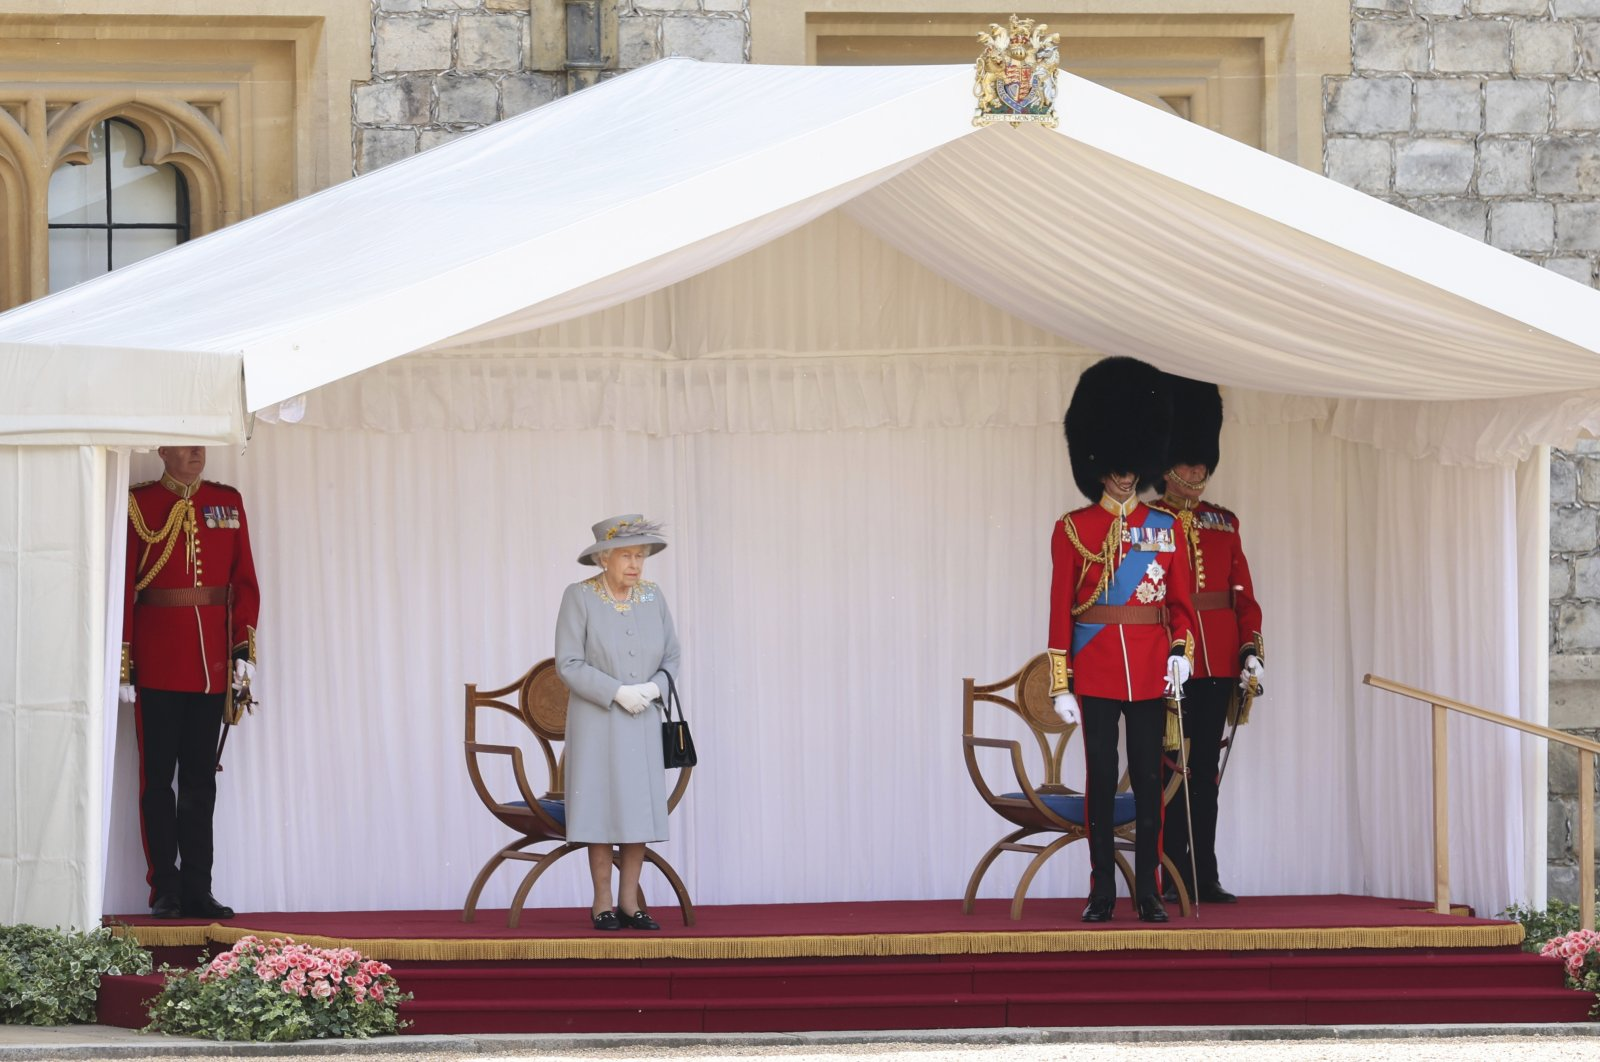 Britain's Queen Elizabeth II and the Duke of Kent watch a military ceremony to mark her official birthday at Windsor Castle, Windsor, England, June 12, 2021. (Pool via AP)